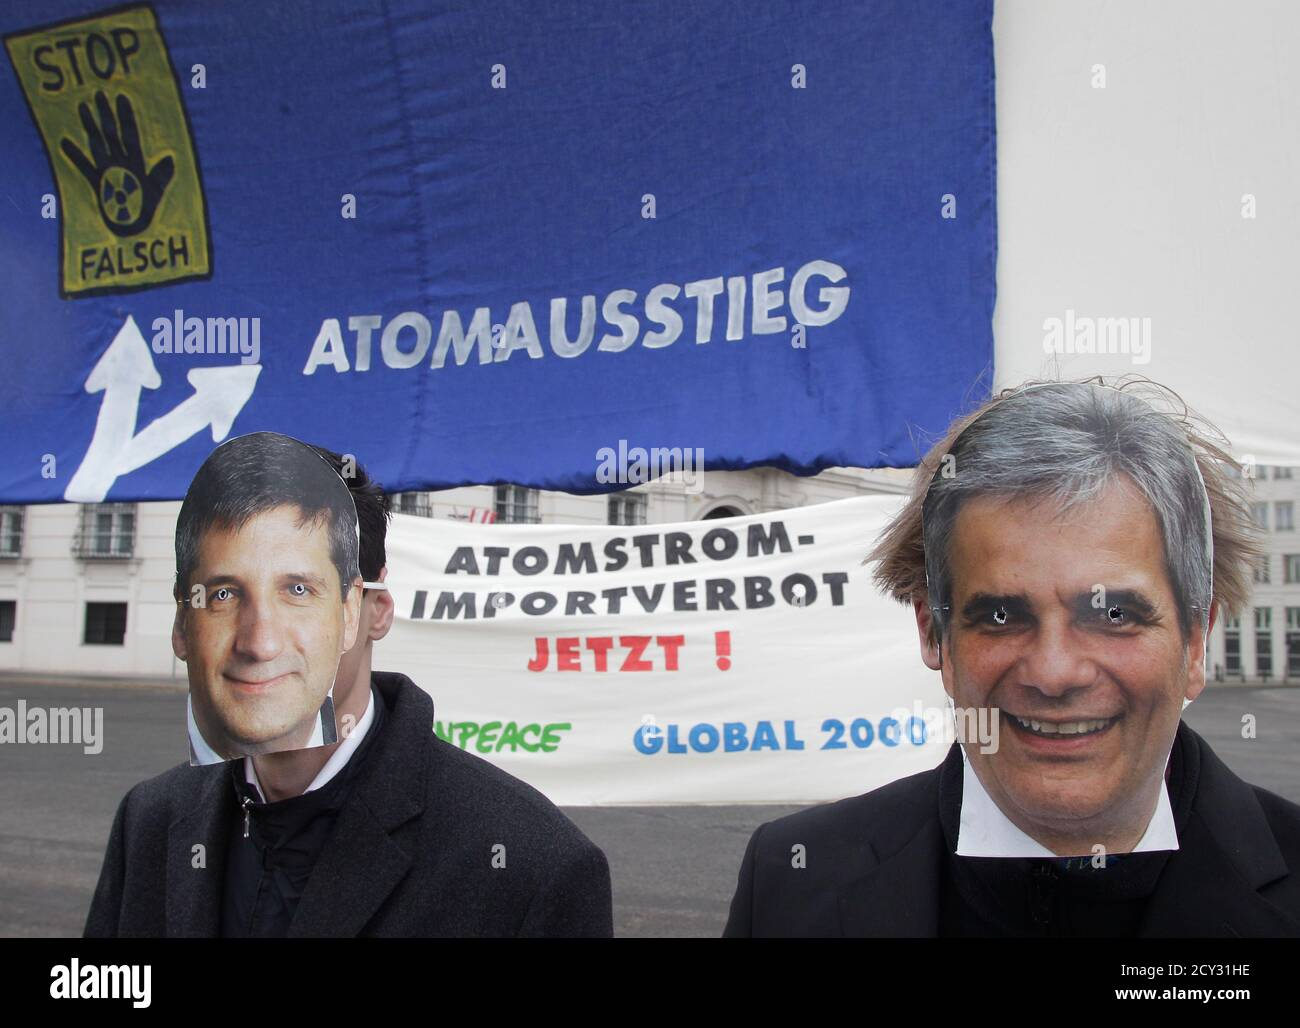 Members of Global 2000 , wearing masks of Austrian Chancellor Werner Faymann (R) and Foreign Minister Michael Spindelegger, protest for a nuclear phaseout ahead of an energy summit in front of the Federal Chancellery of the Republic of Austria in Vienna April 16, 2012. REUTERS/Leonhard Foeger  (AUSTRIA - Tags: POLITICS CIVIL UNREST) Stock Photo